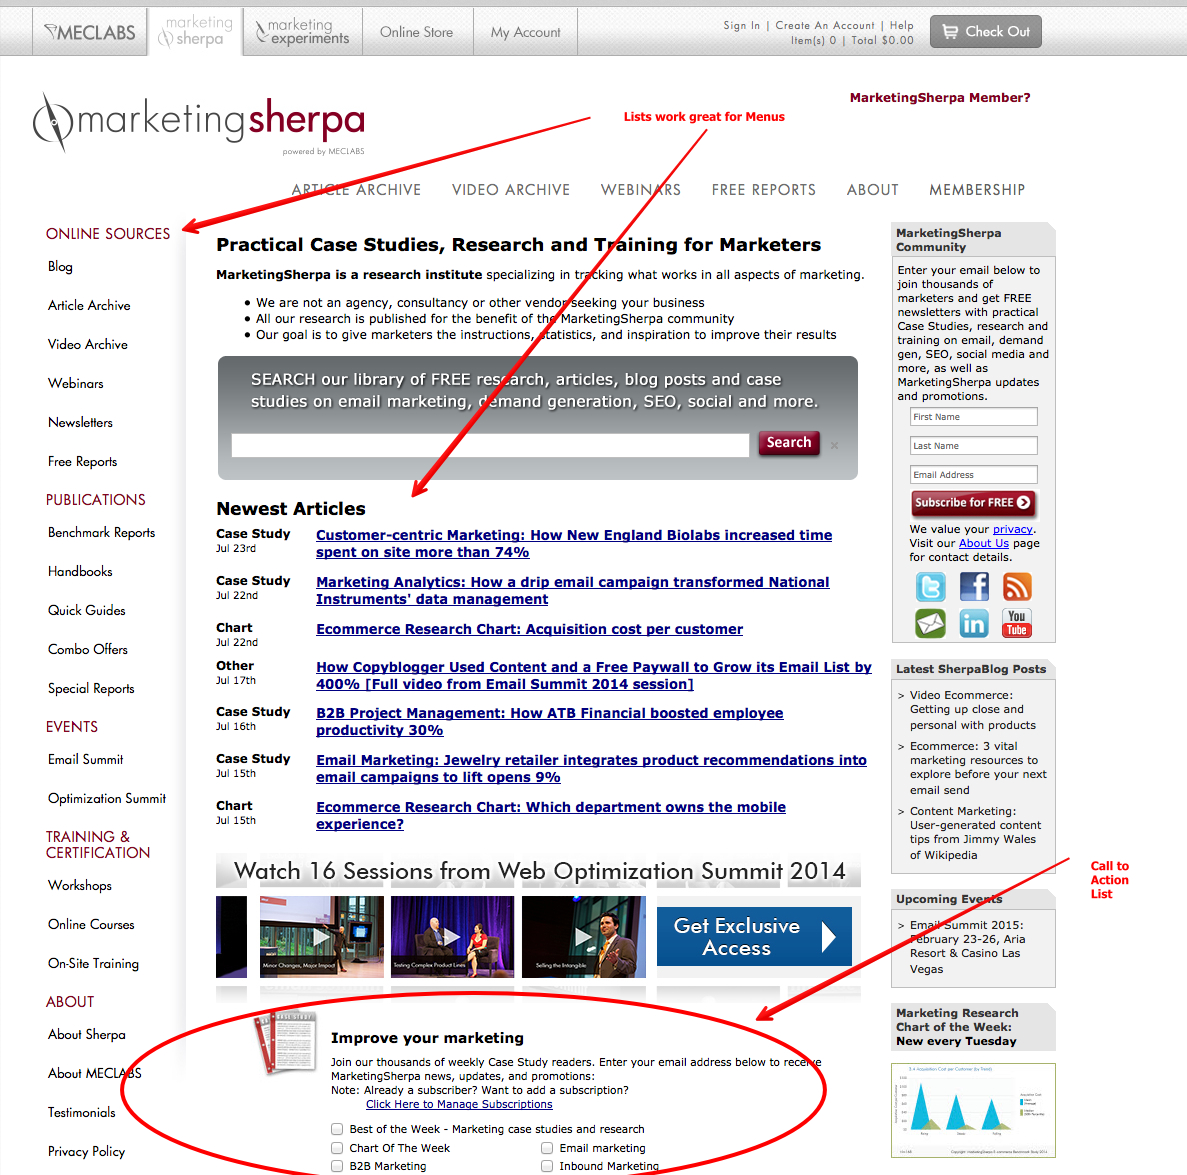 Marketing Research: Articles, Reports and Case Studies   MarketingSherpa 2014-07-23 22-36-50 2014-07-23 22-38-24